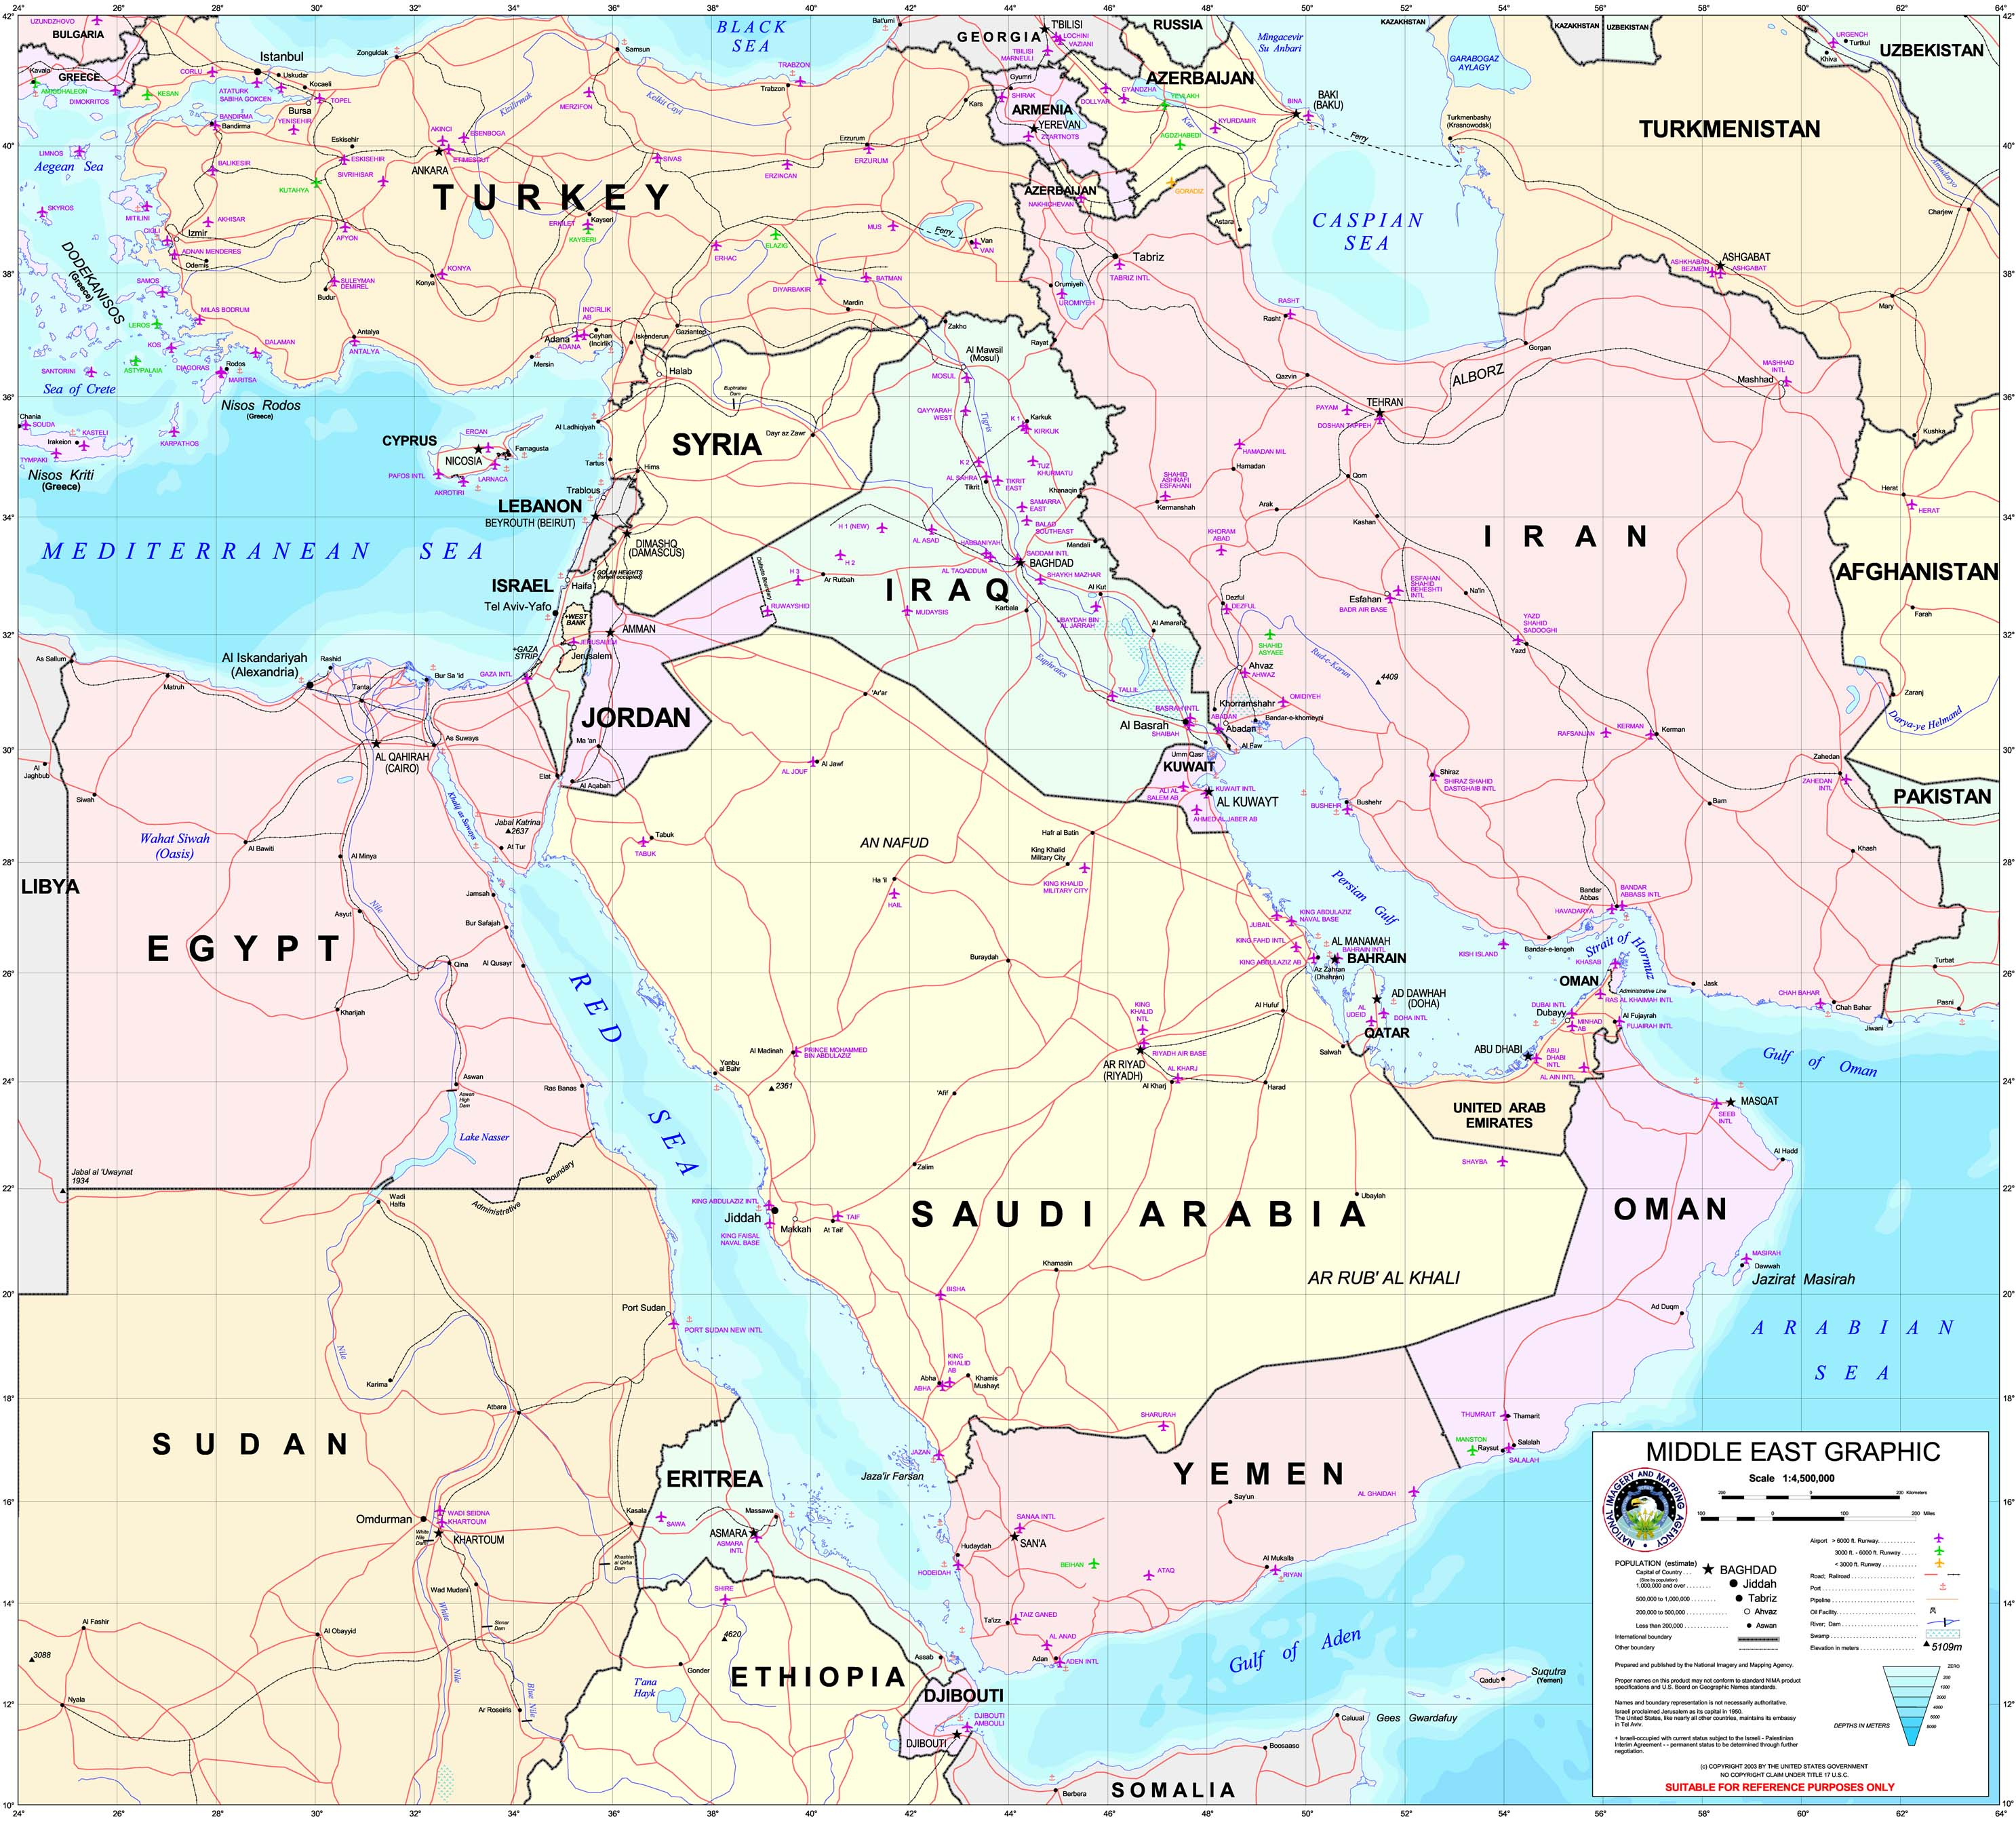 List of modern conflicts in the Middle East